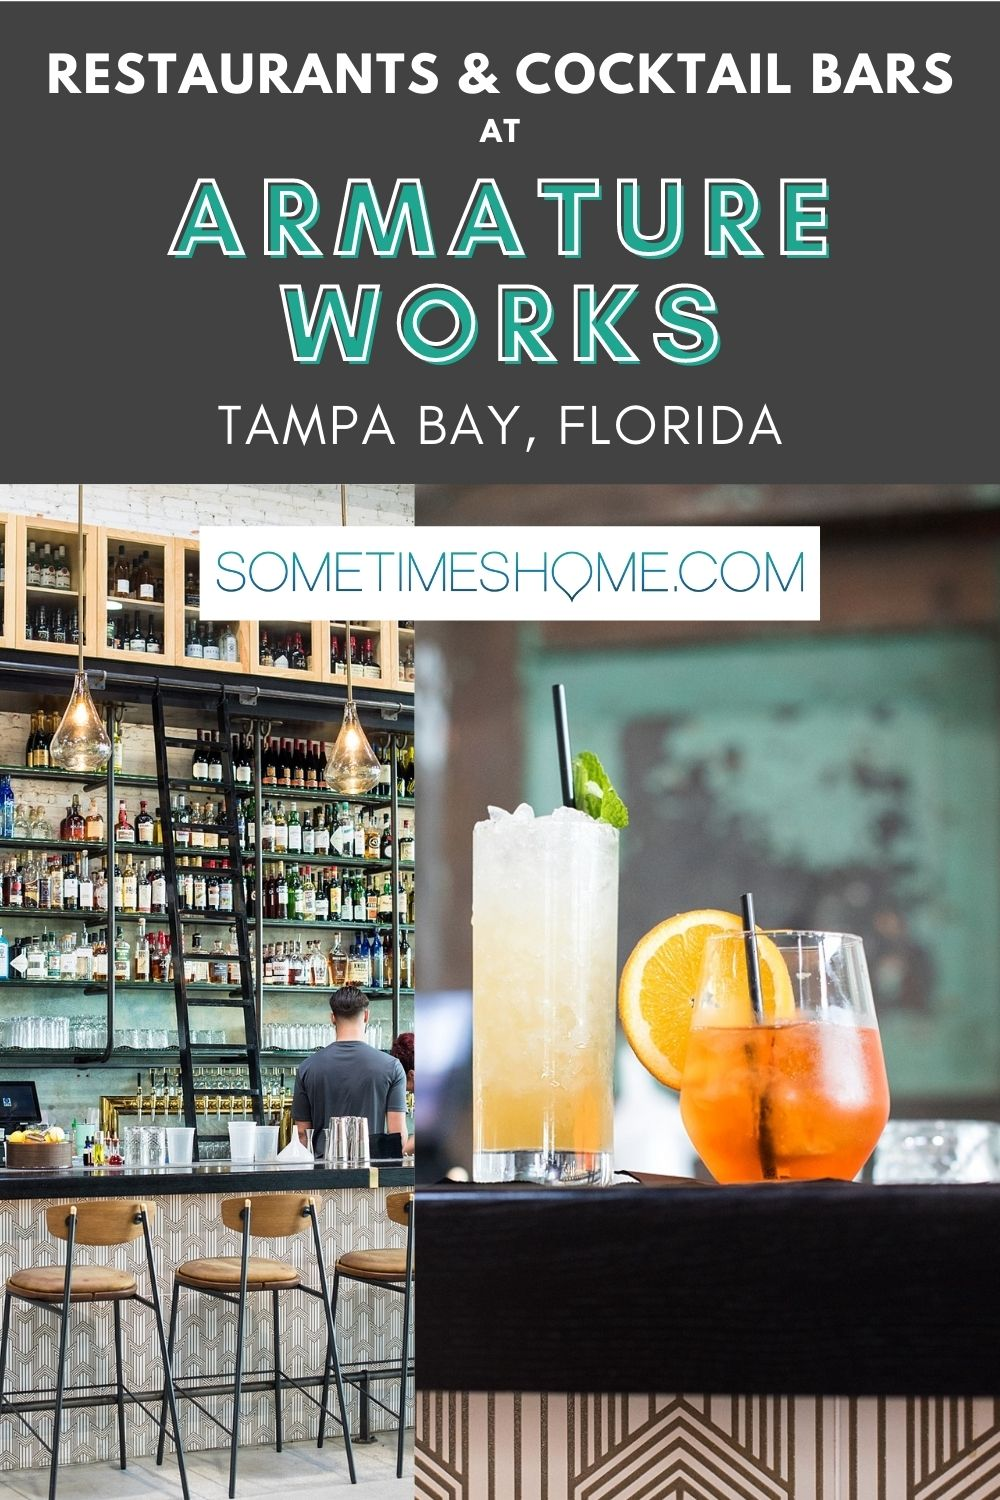 Pinterest image for Armature Works Tampa Bay with a photo of two cocktails on the left.